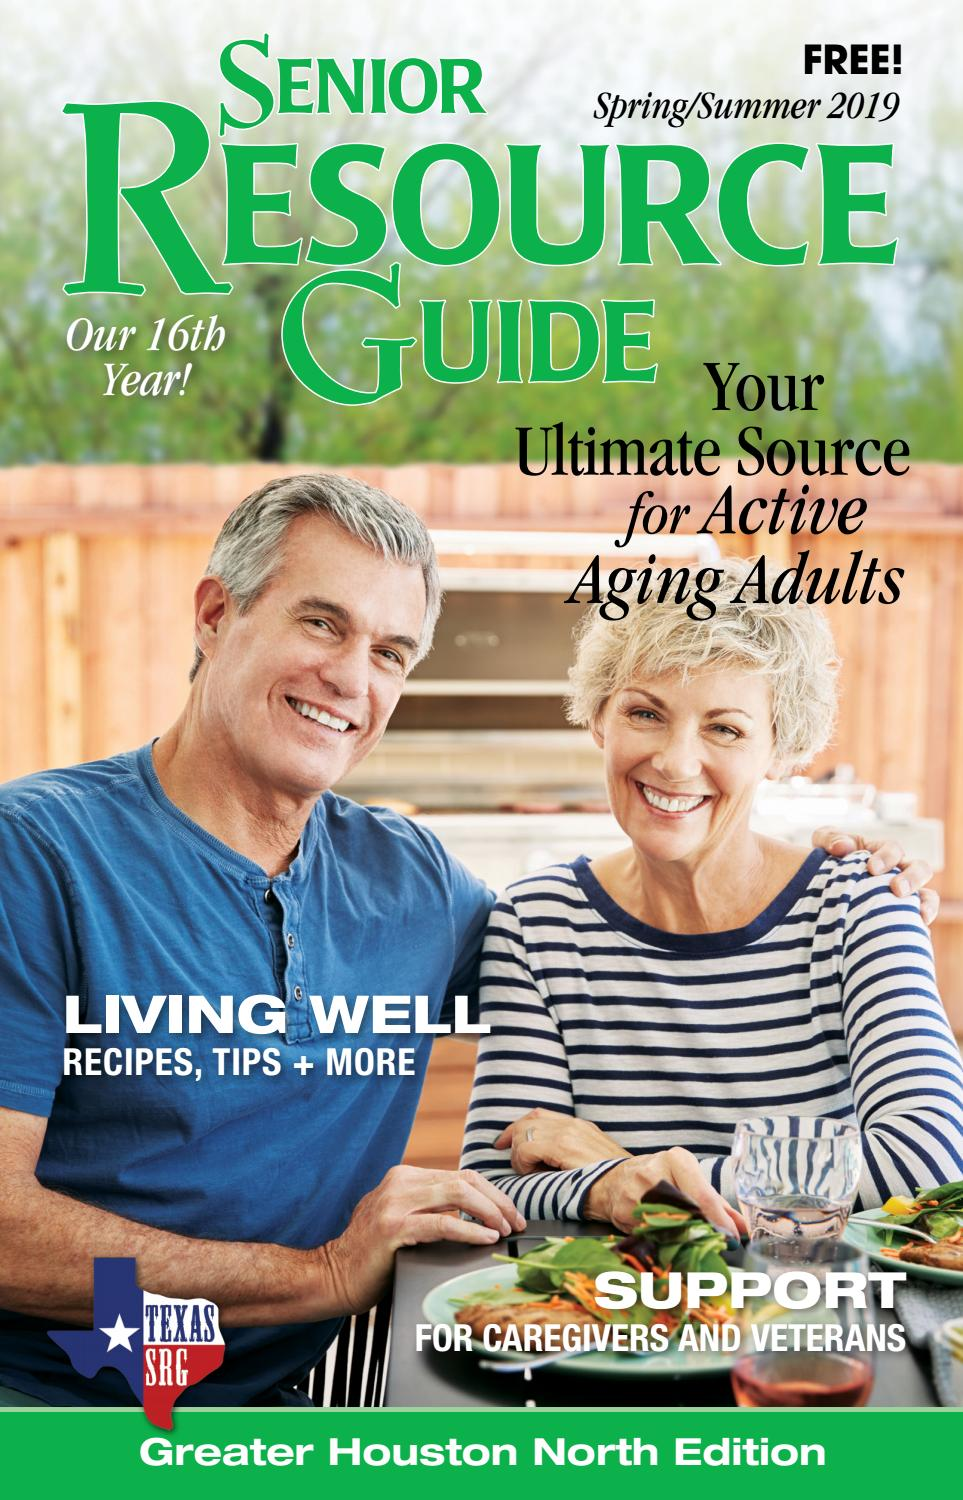 Senior Resource Guide North Houston (Spring/Summer 2019) by